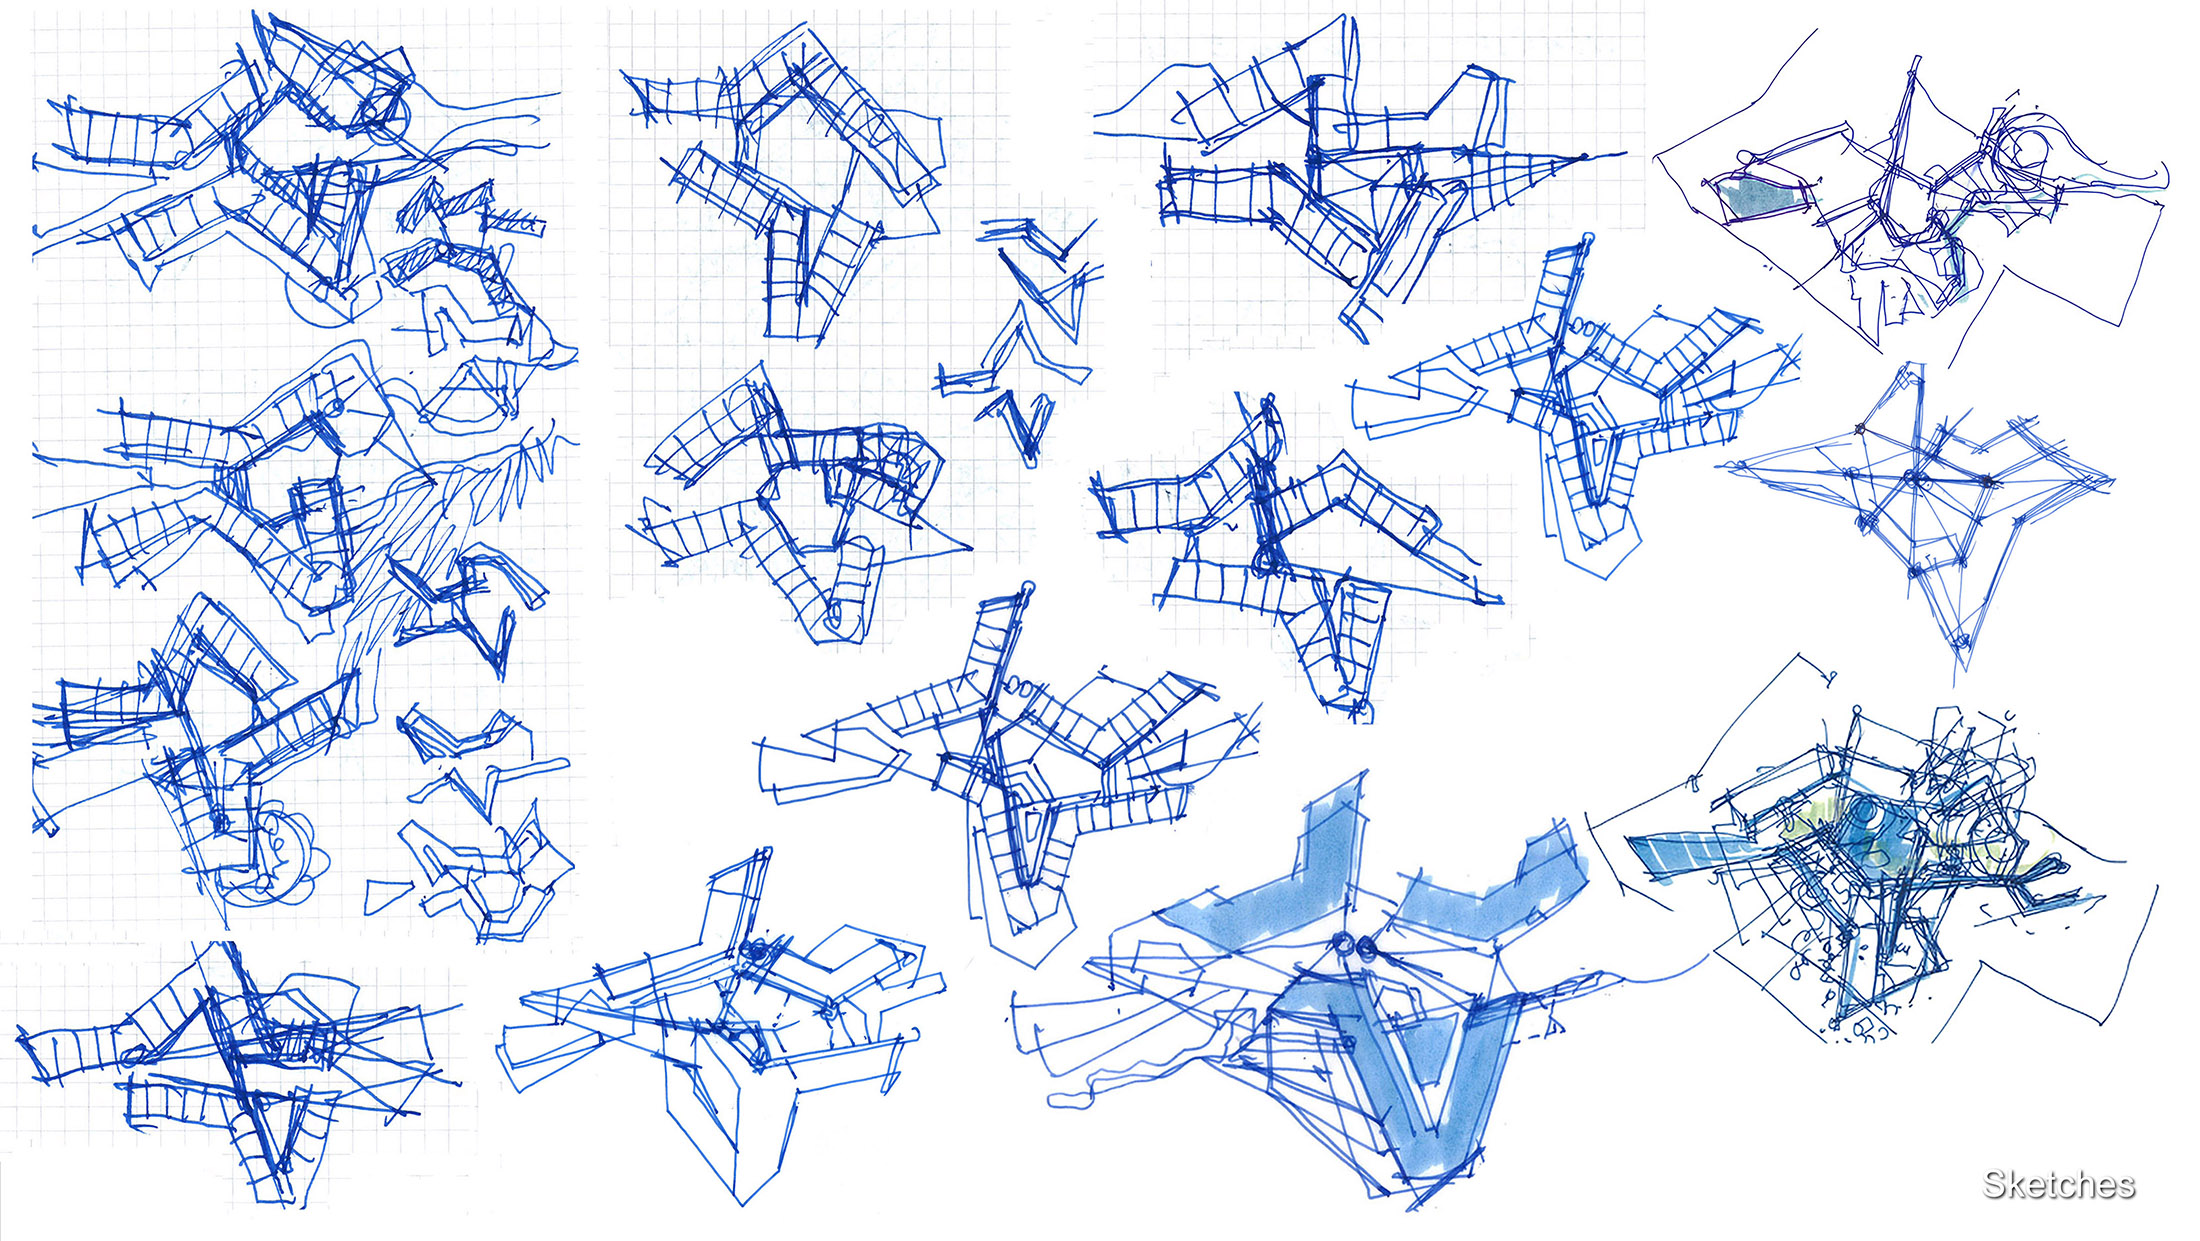 8_Sketches